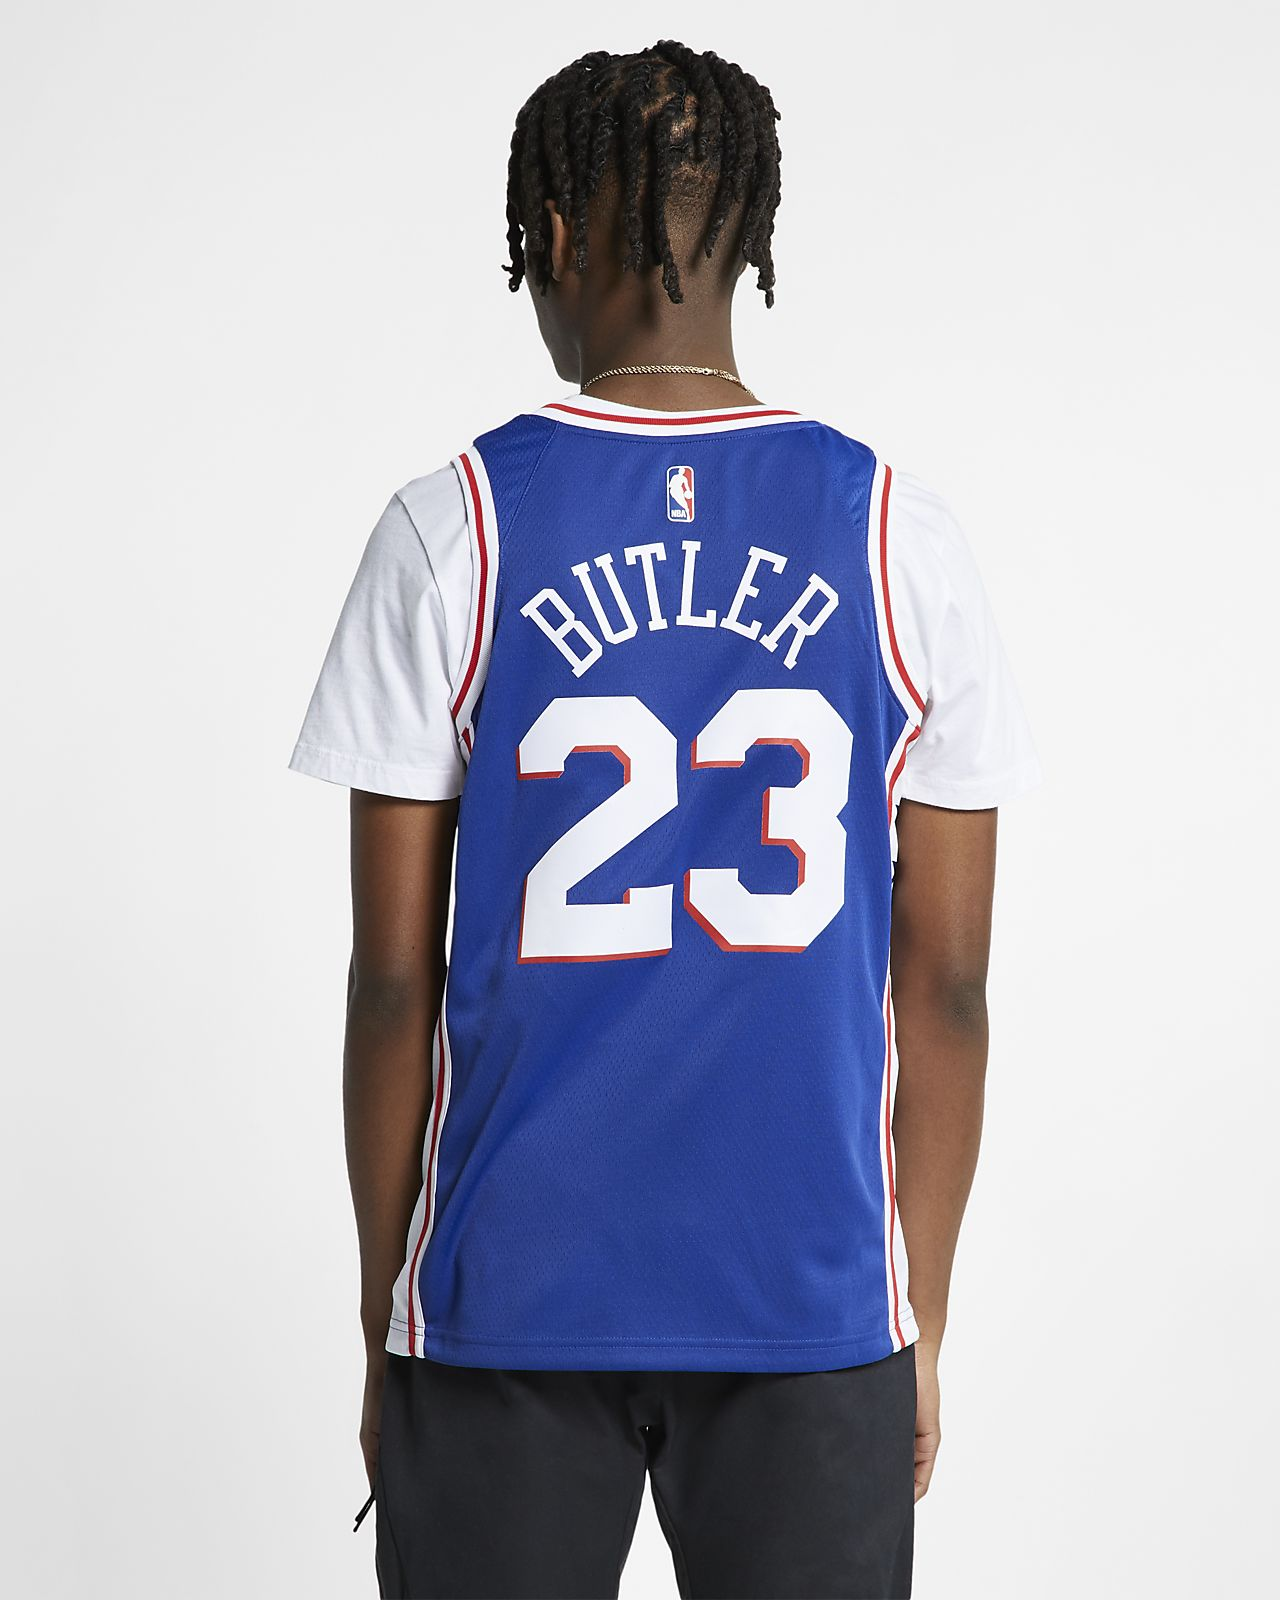 1ccaf1e1841 ... 费城76 人队(Jimmy Butler) Icon Edition Swingman Nike NBA Connected Jersey 男子